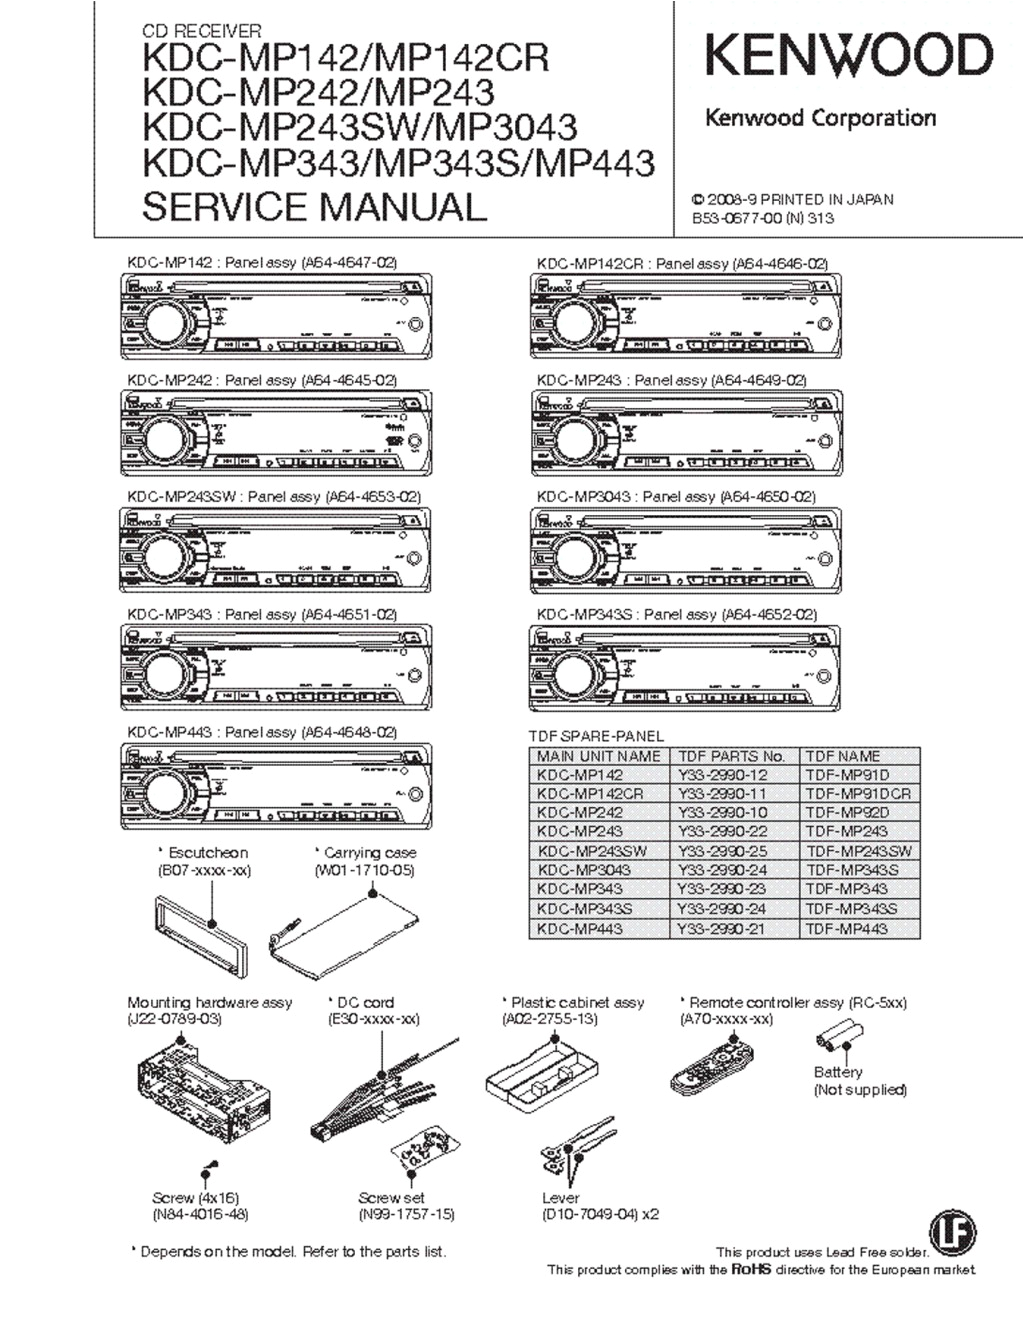 [DIAGRAM_4FR]  Kenwood Kdc 252u Wiring Diagram - Wiring Diagrams All | Kenwood Kdc Bt555u Wiring Diagram Cd Reciver Model |  | elaariela.de